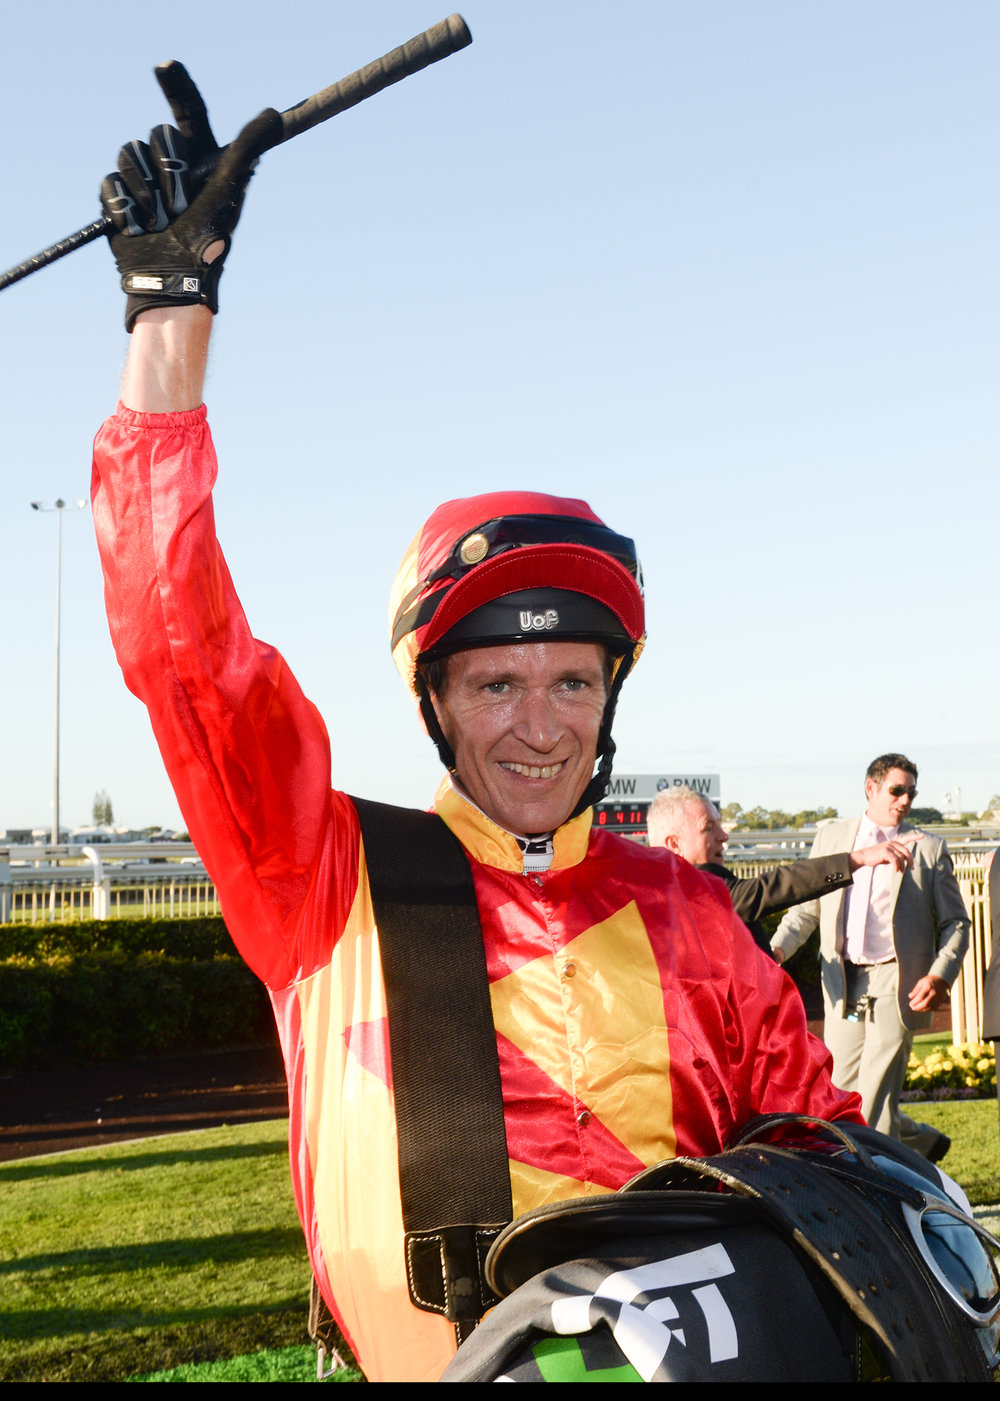 Image courtesy Trackside Photography - Glen Colless after winning the BTC Cup Group 1.